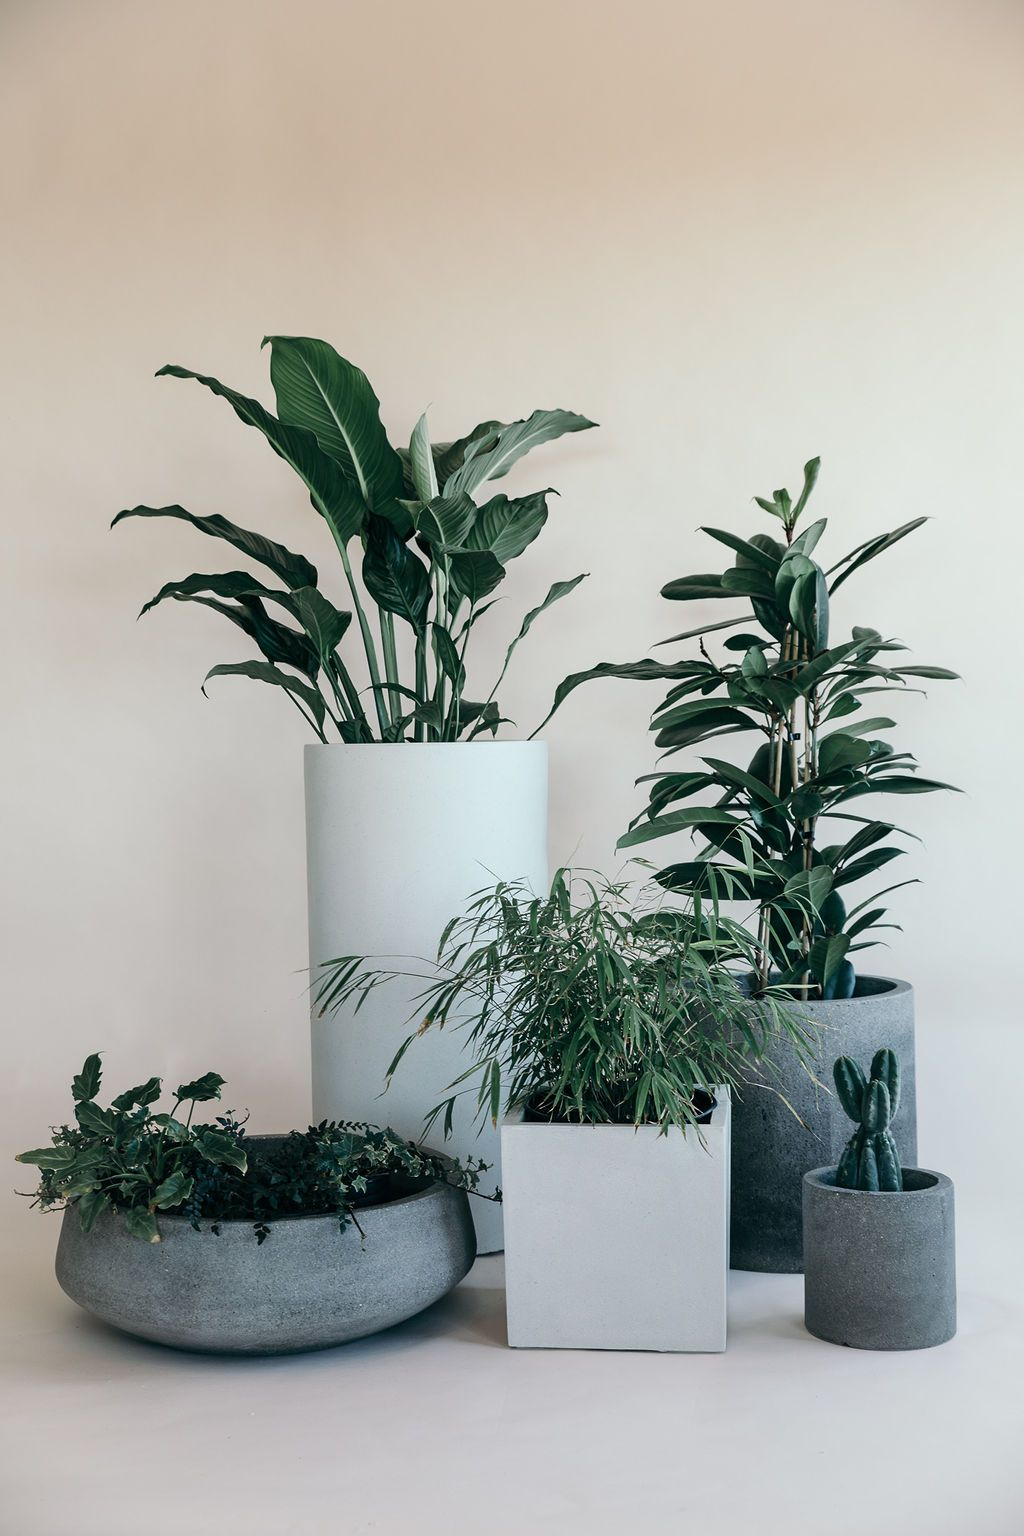 Riverstone Platter Planter - variety of different sized pots - available to hire or buy from The Green Room